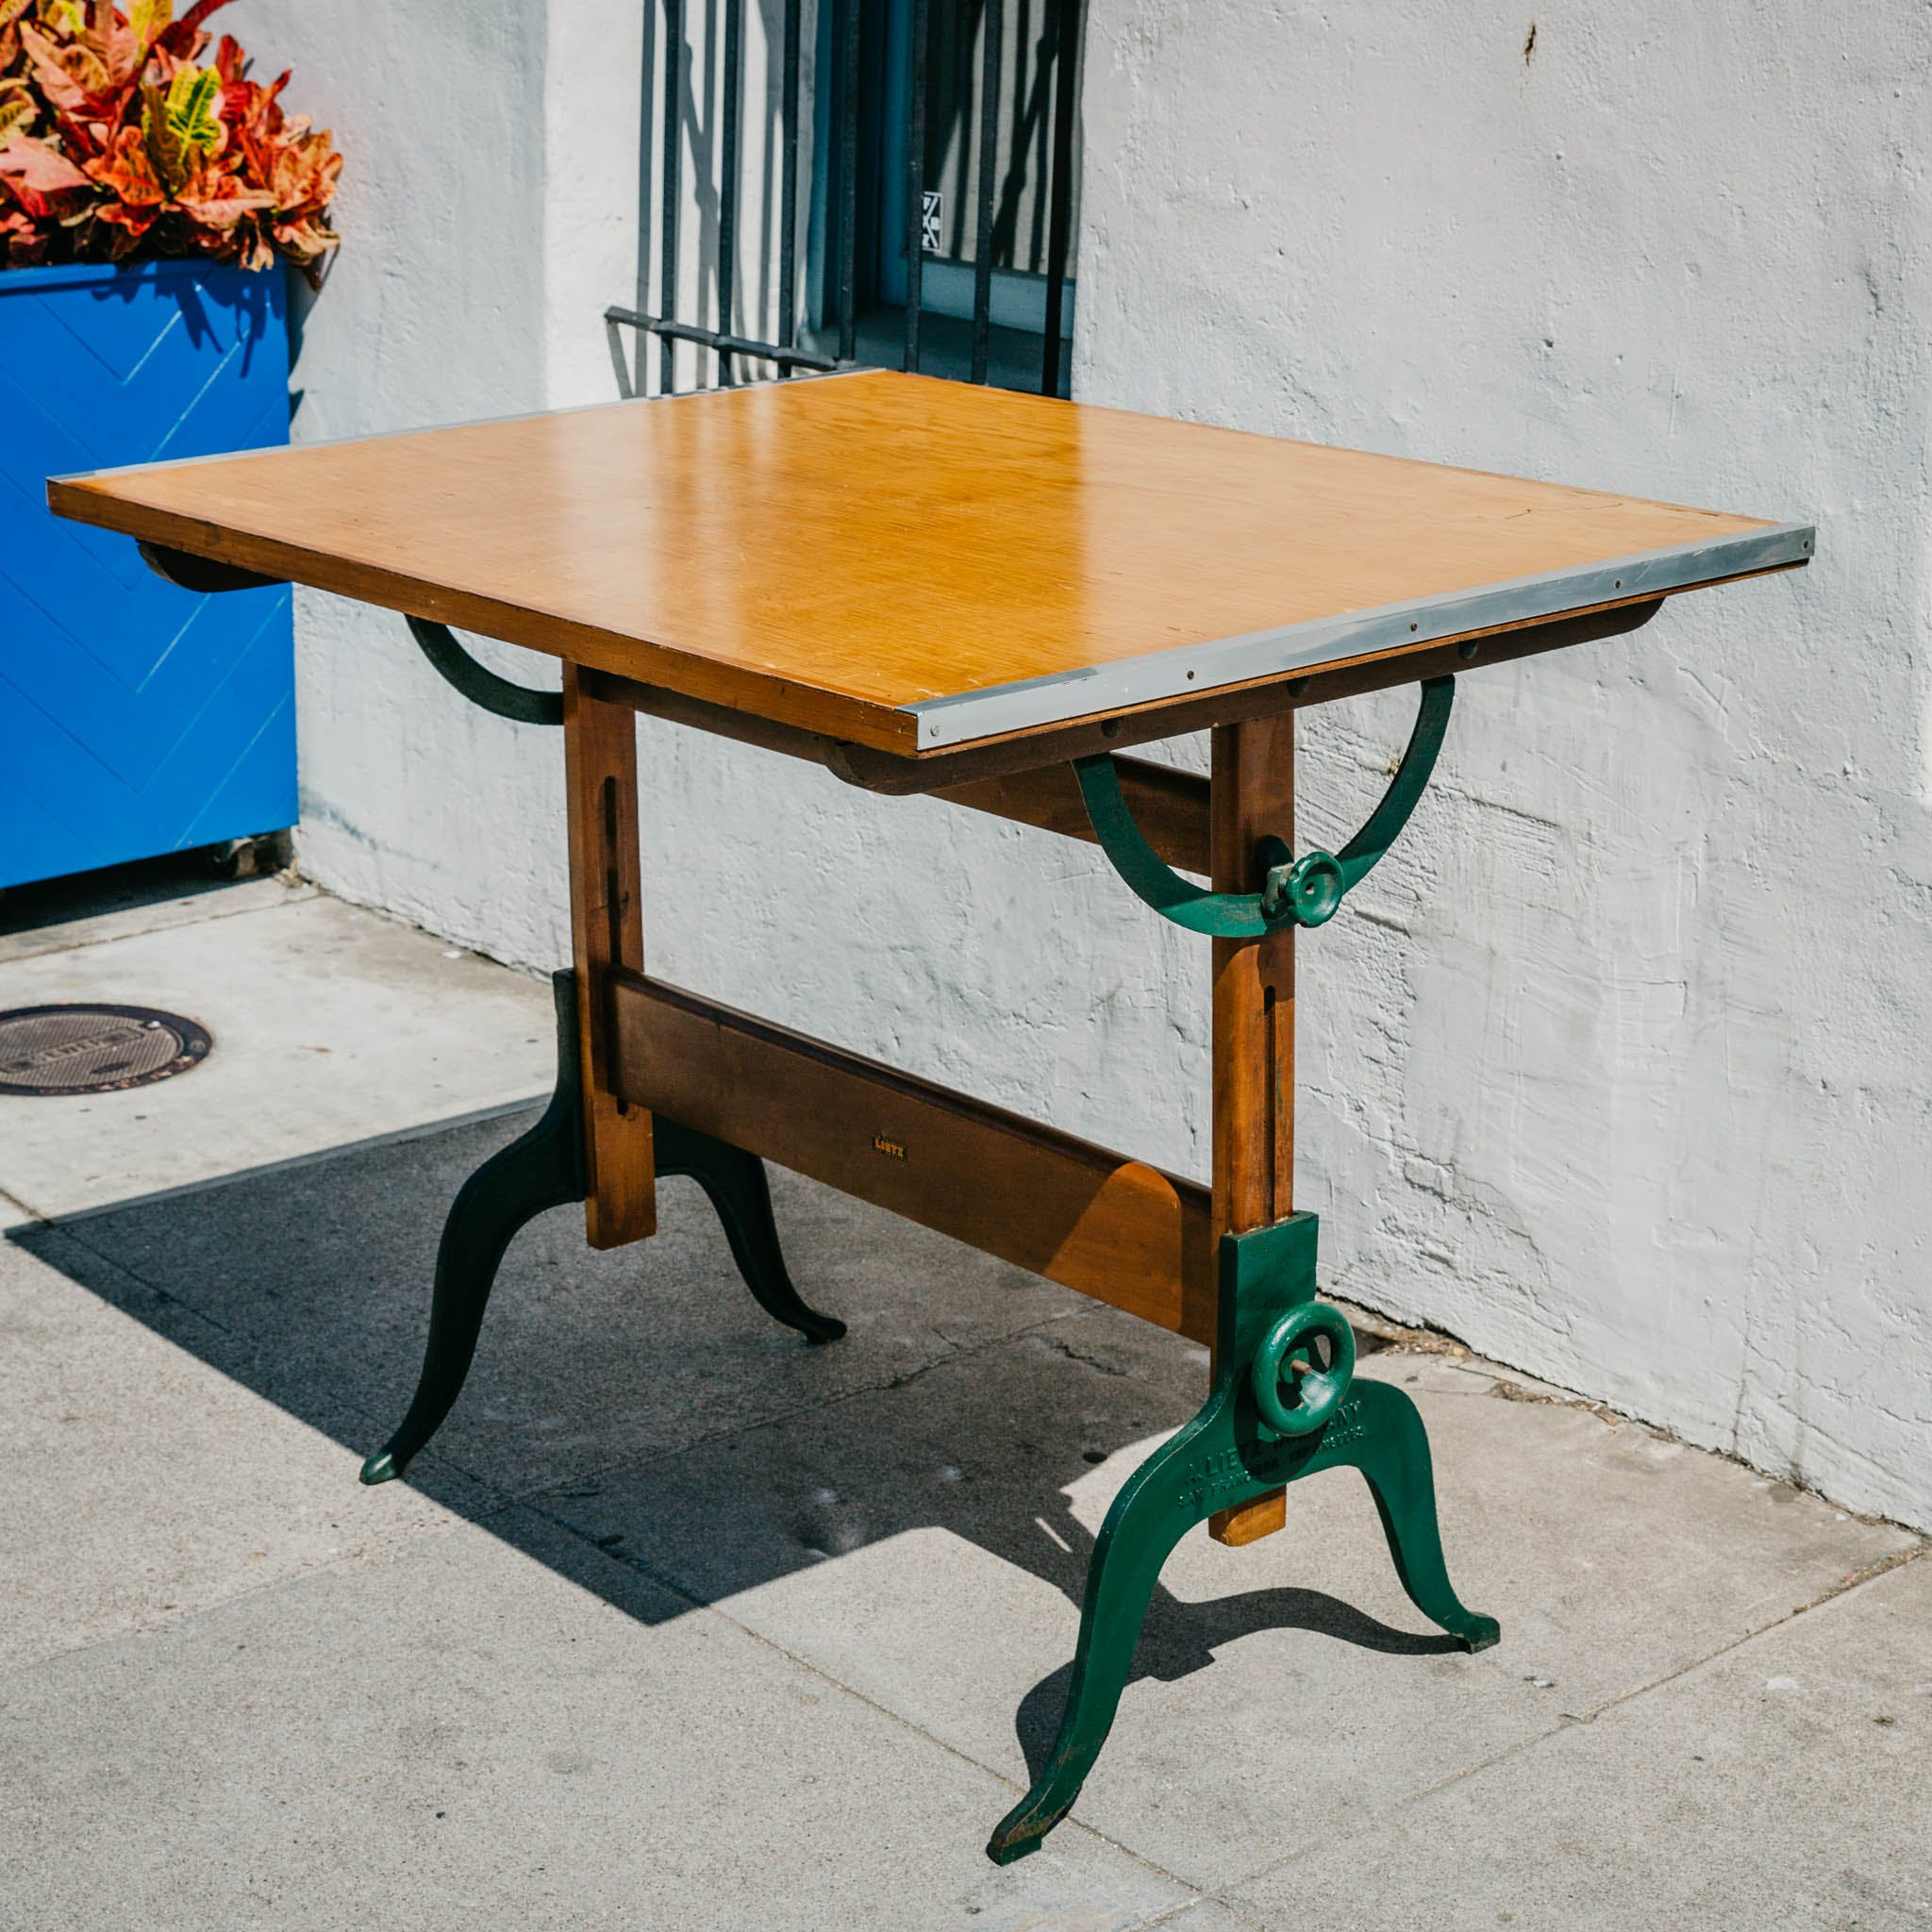 Vintage 1940s Drafting Table With Maple Top And Cast Iron Legs Produced By A Lietz Company